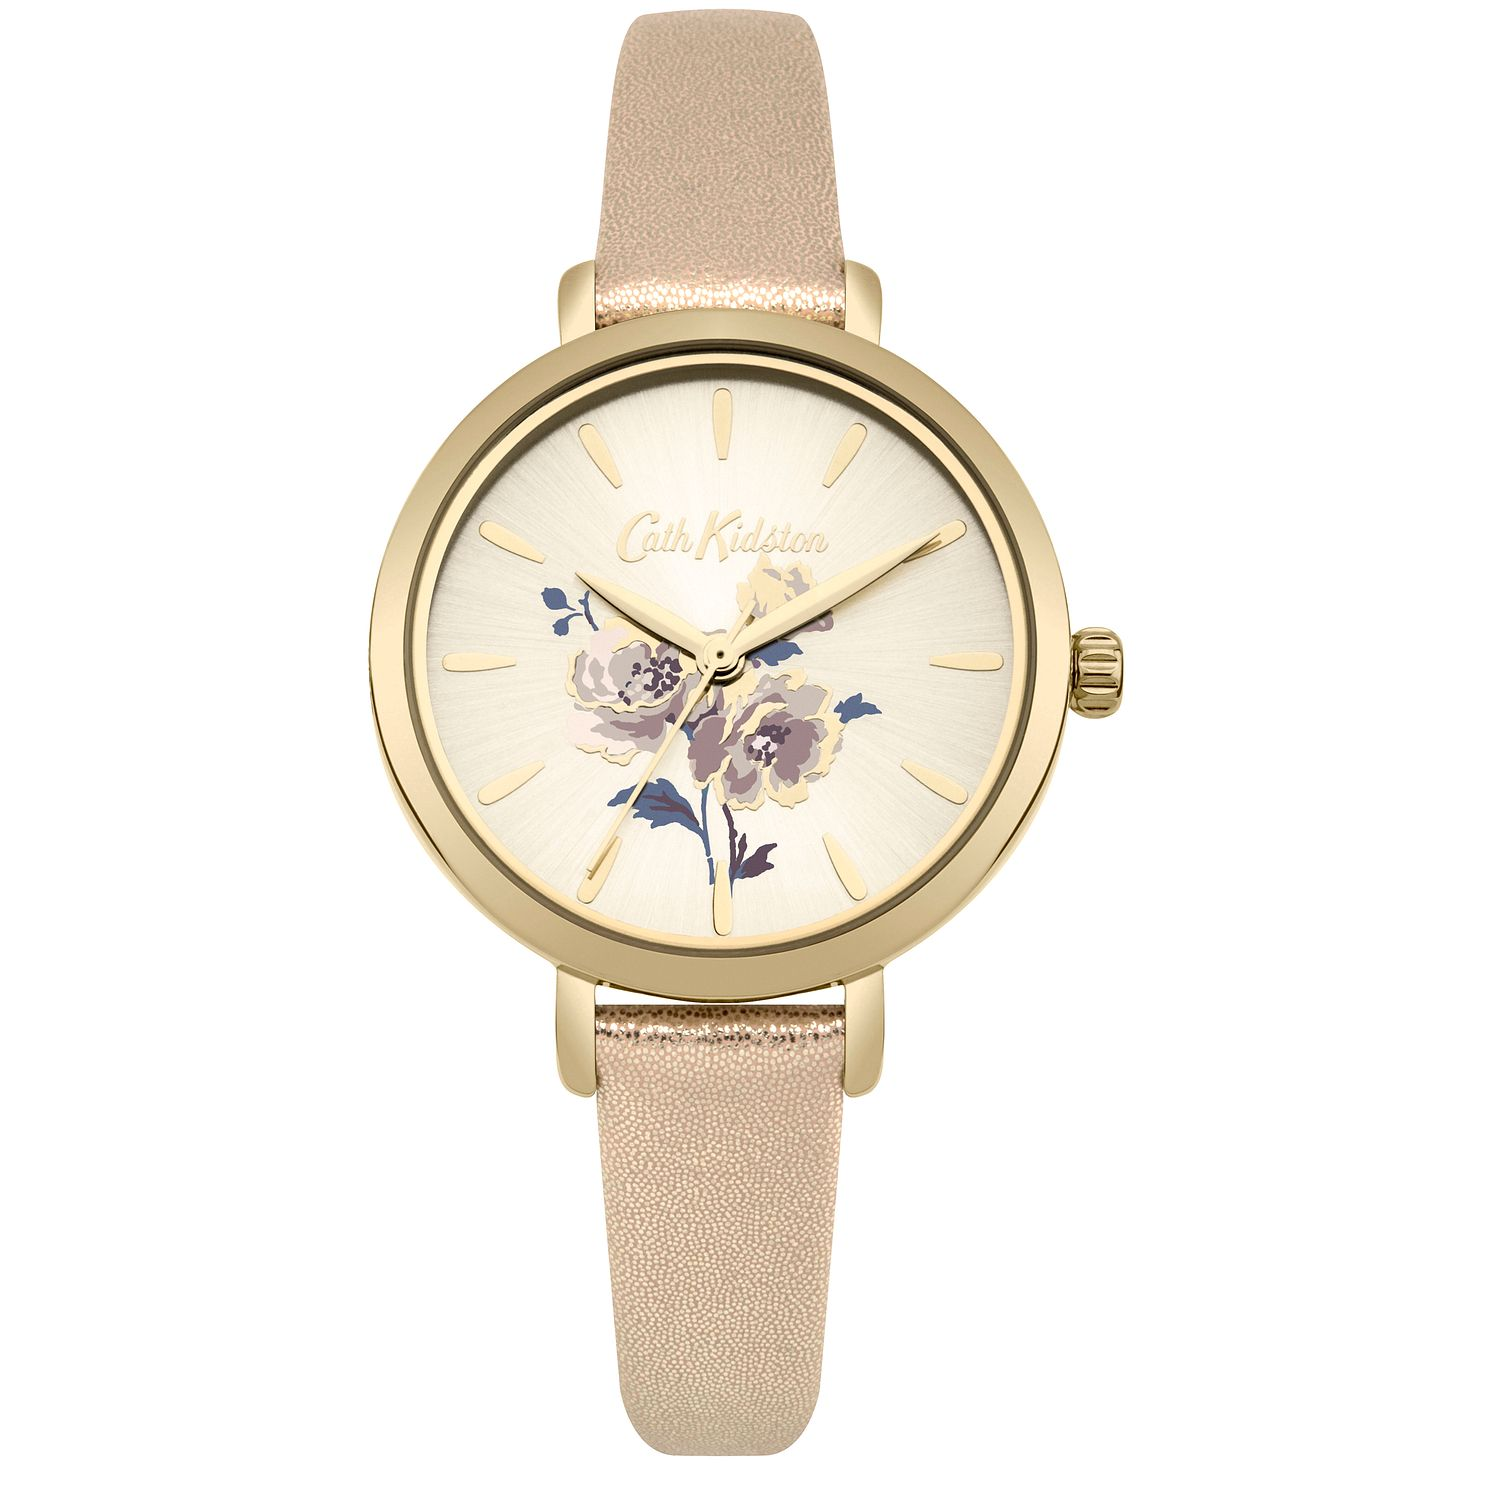 Cath Kidston Ladies' Metallic Gold Strap Watch - Product number 4166213